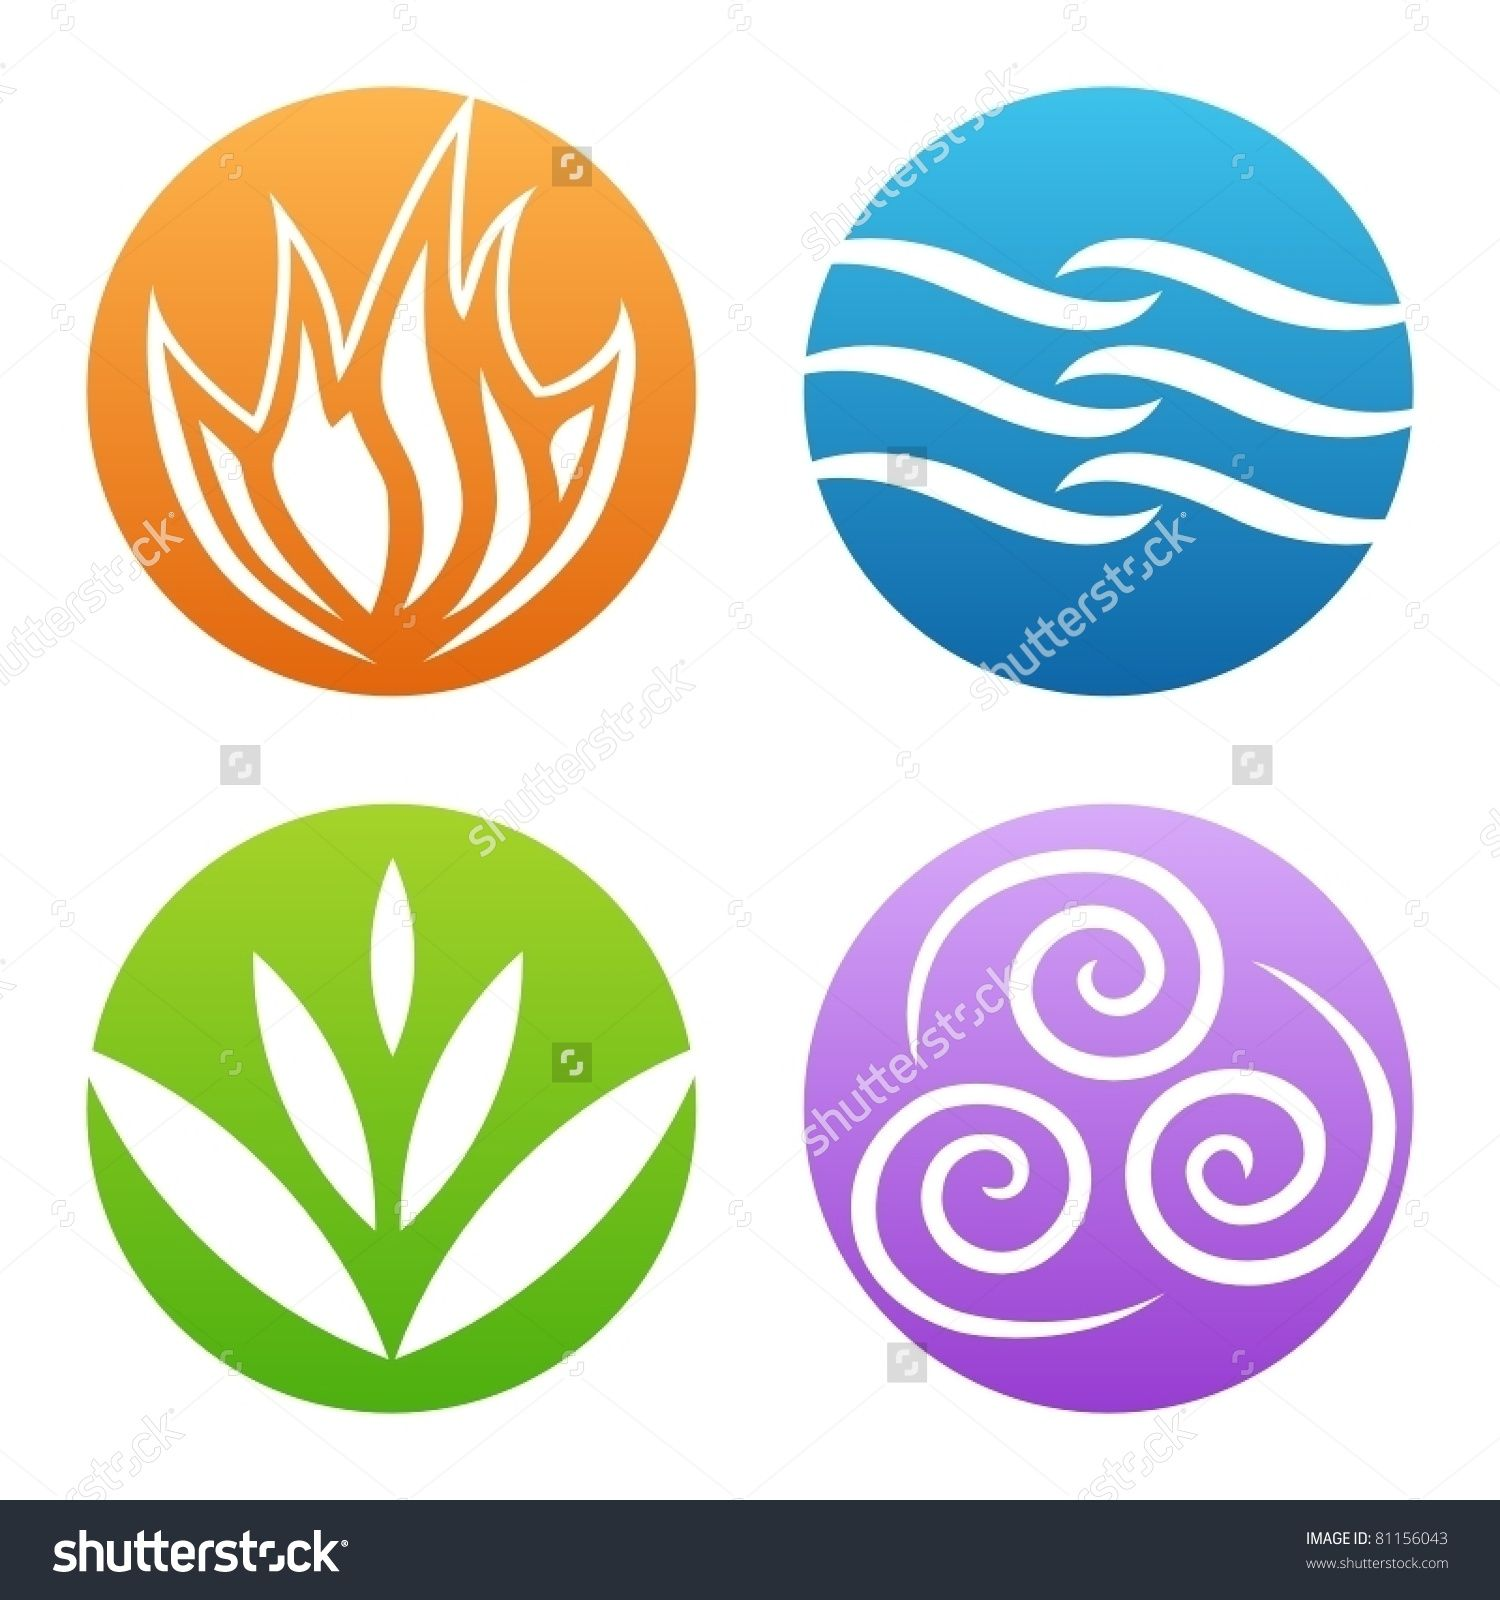 Earth Wind Fire Water Stock Vectors & Vector Clip Art ...